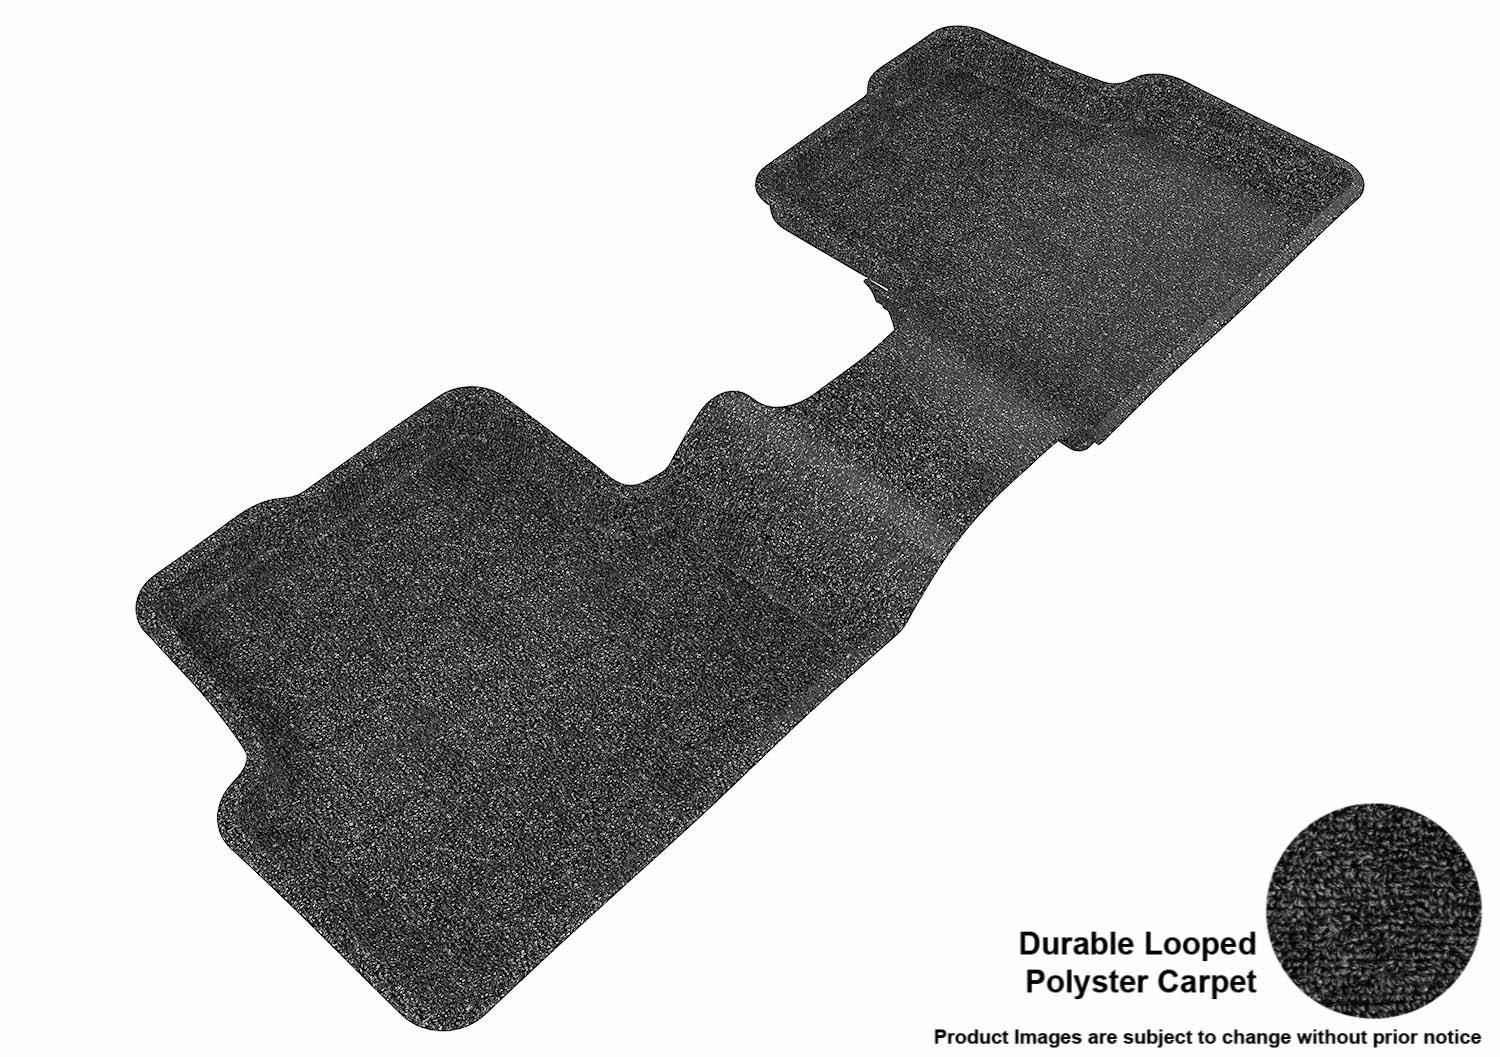 3D MAXpider Second Row Custom Fit All-Weather Floor Mat for Select Chevrolet Sonic Sedan//Hatchback Models L1CH02922201 Classic Carpet Gray